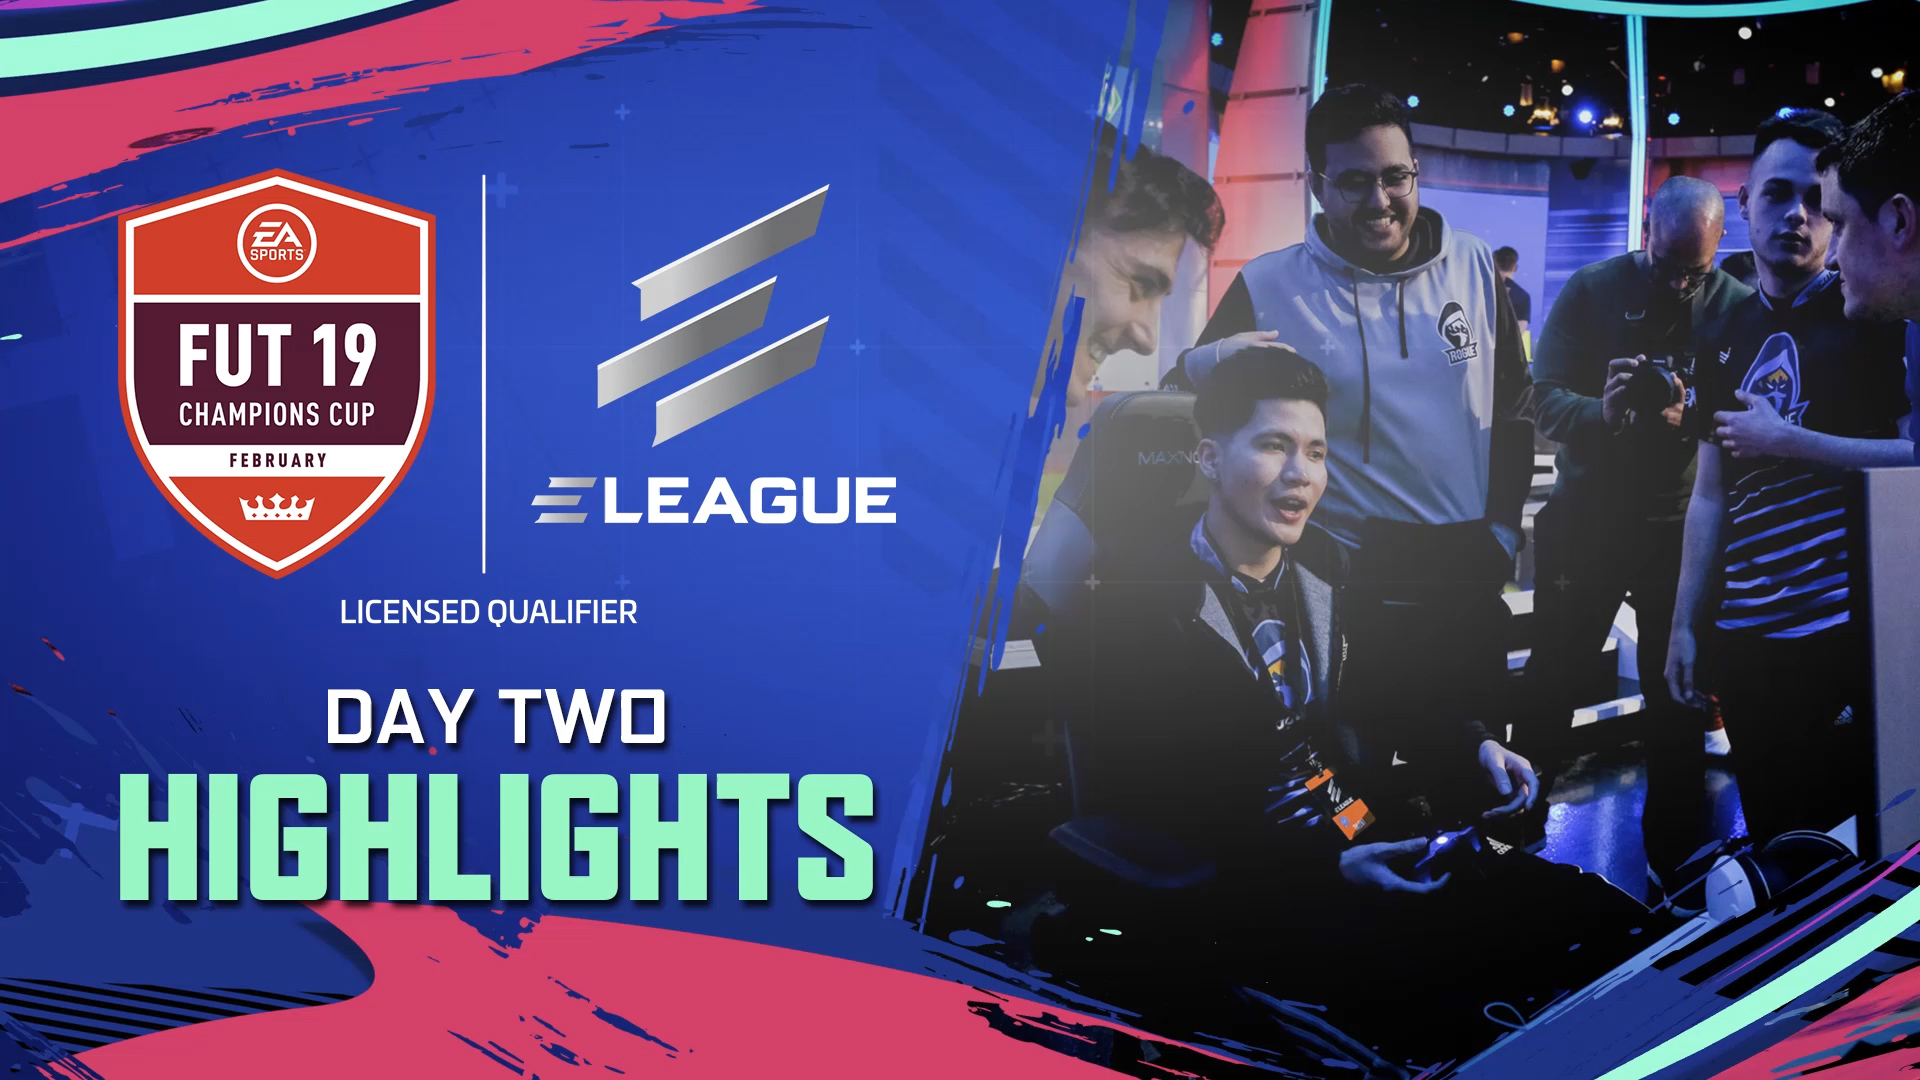 ELEAGUE FUT Champions Cup February Day 2 Highlights